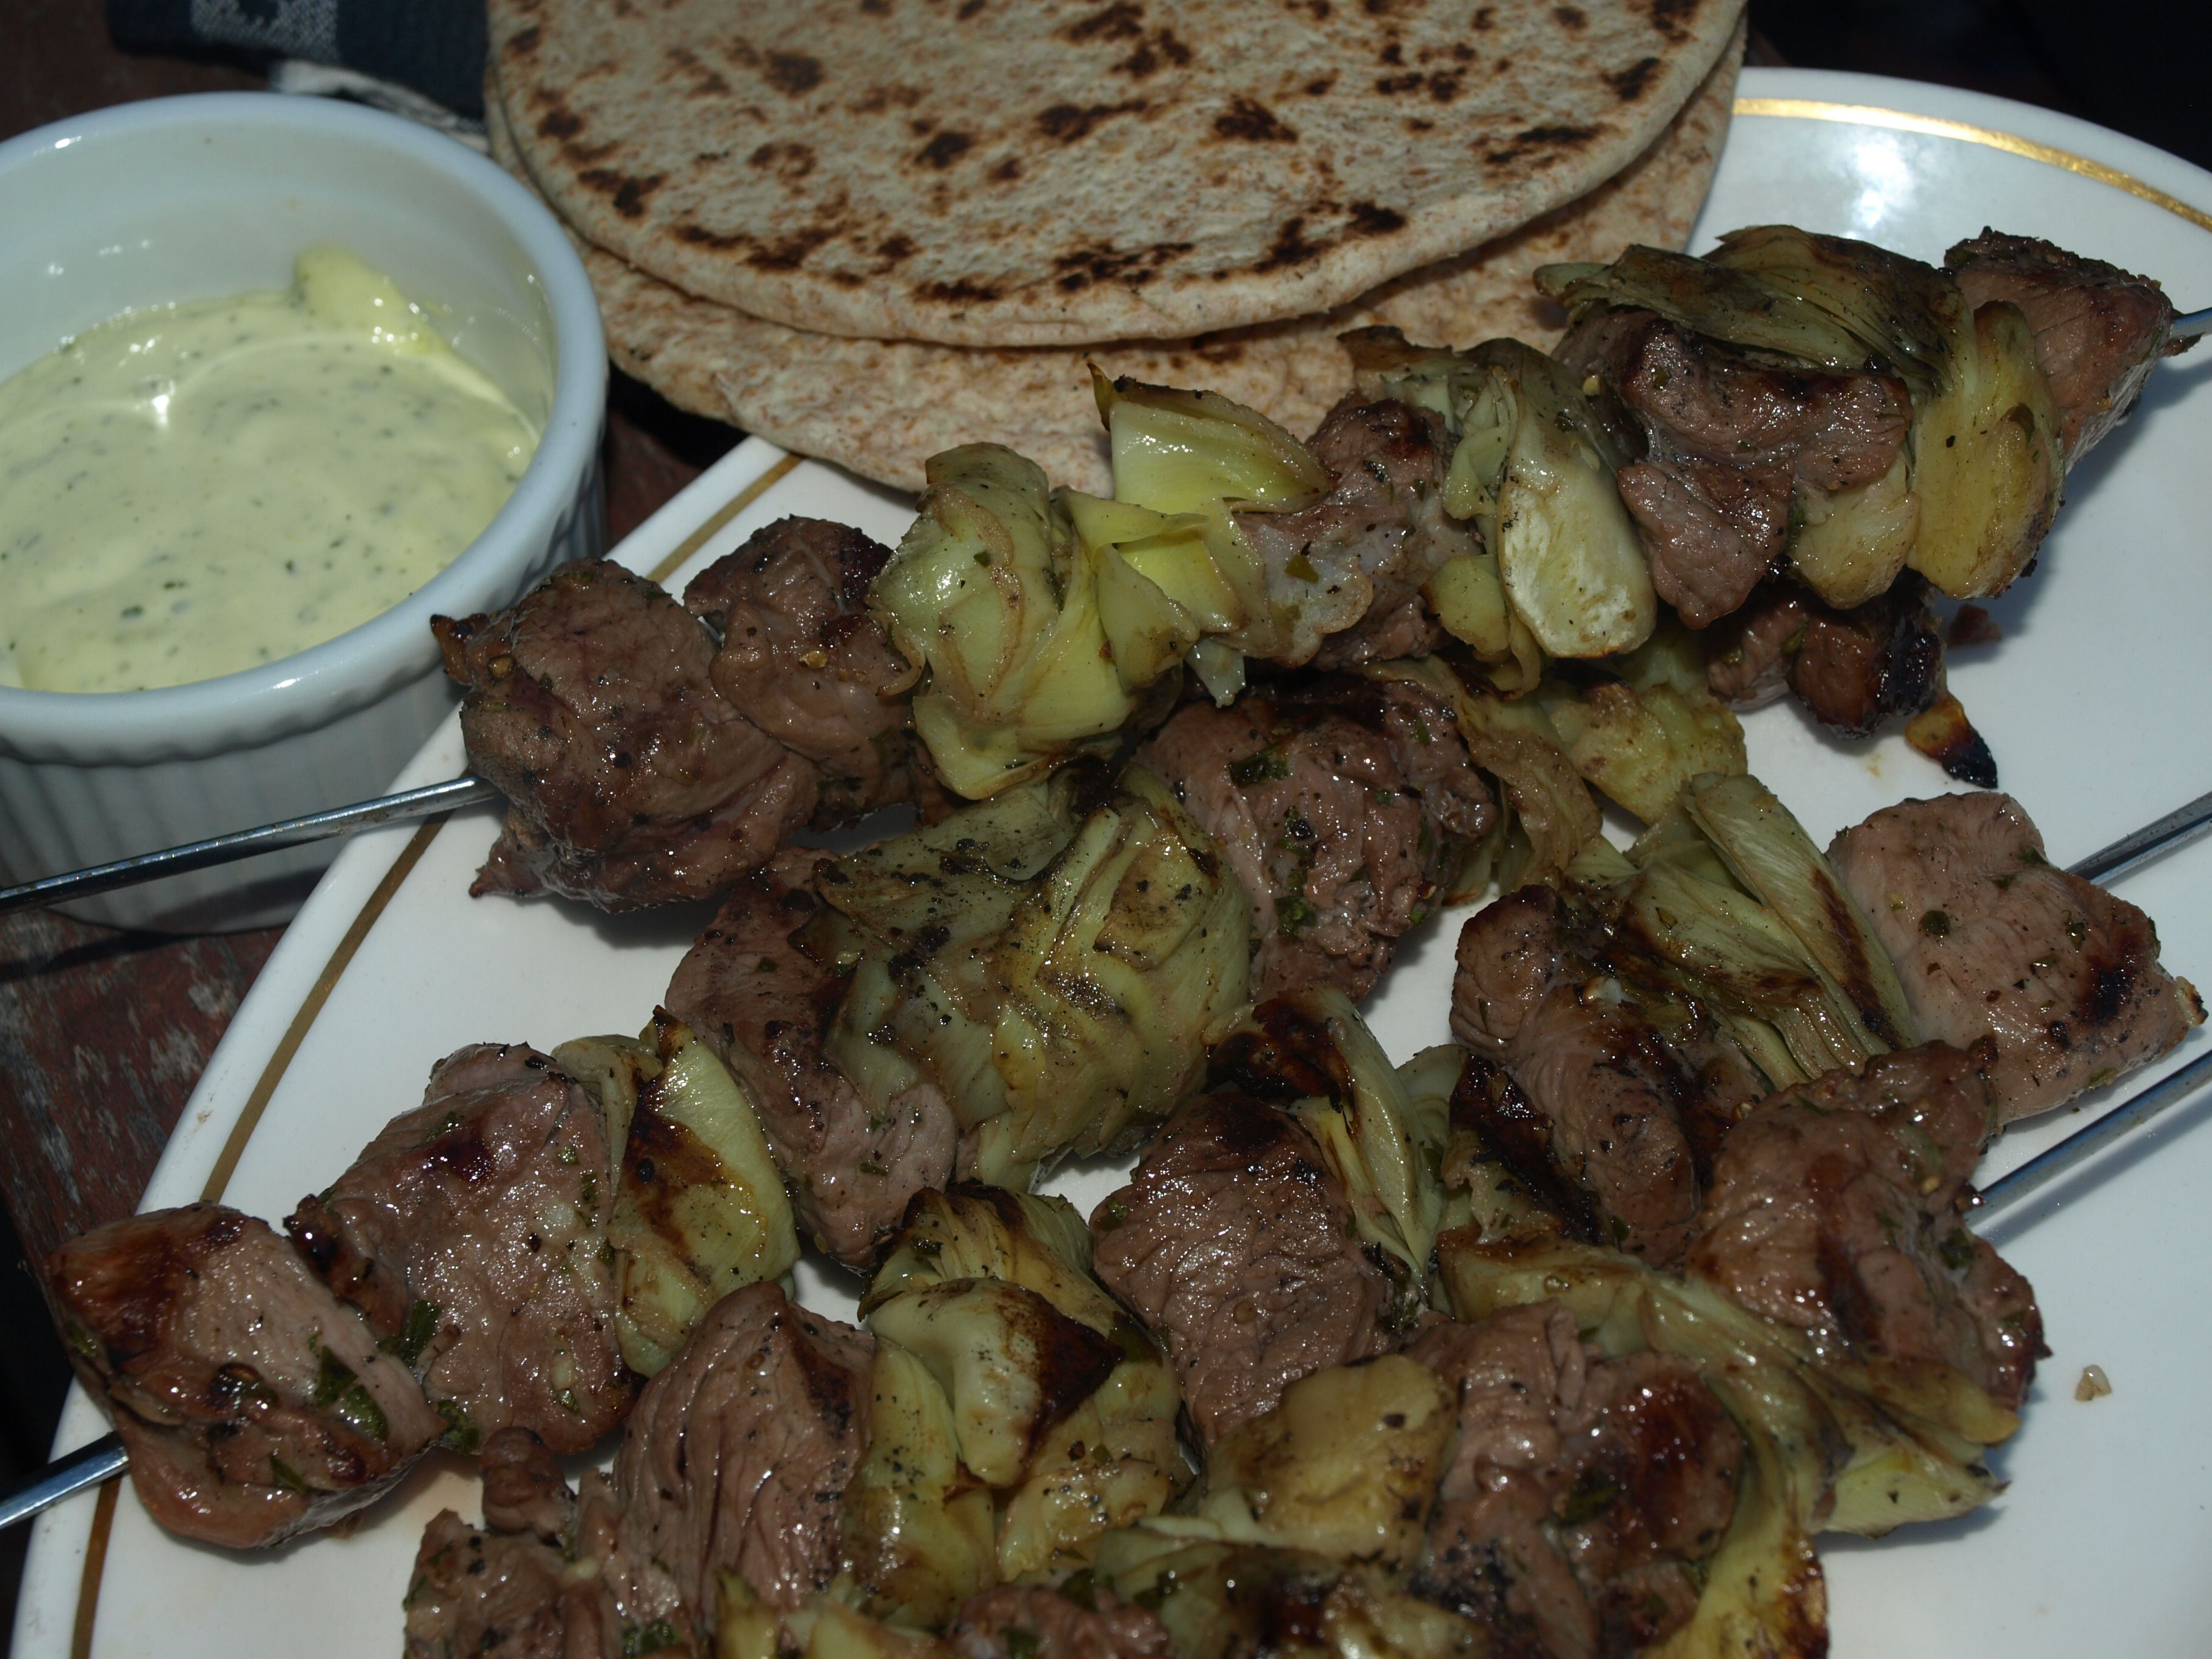 Lamb & Artichoke Kebabs with Minted Lemon Aioli